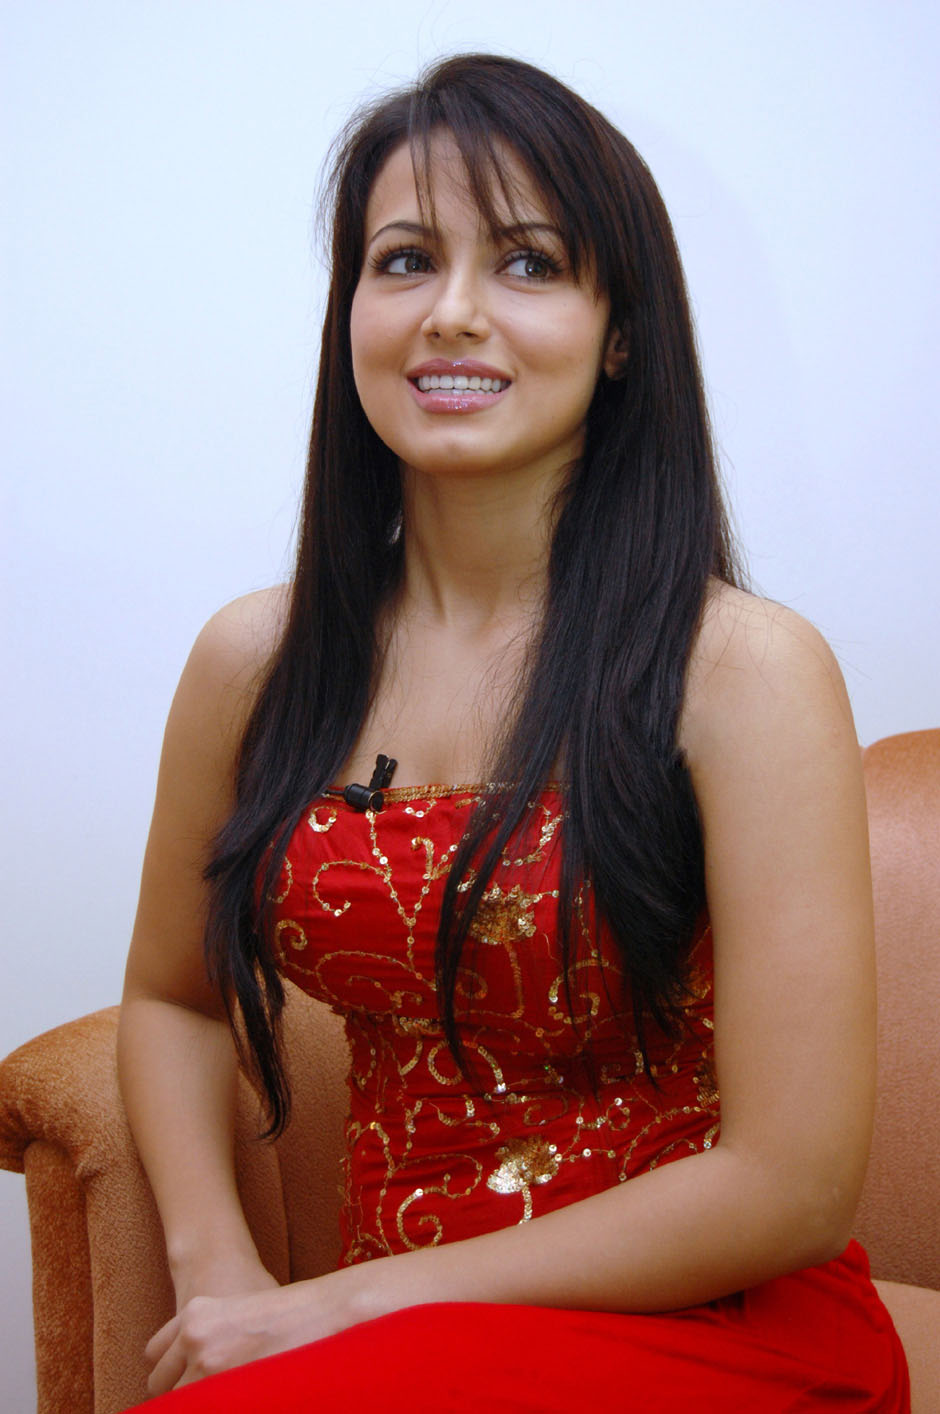 Sana Hot Song http://tamil.tollywoodblog.in/2011/03/south-actress-sana-khan-hot-photo.html